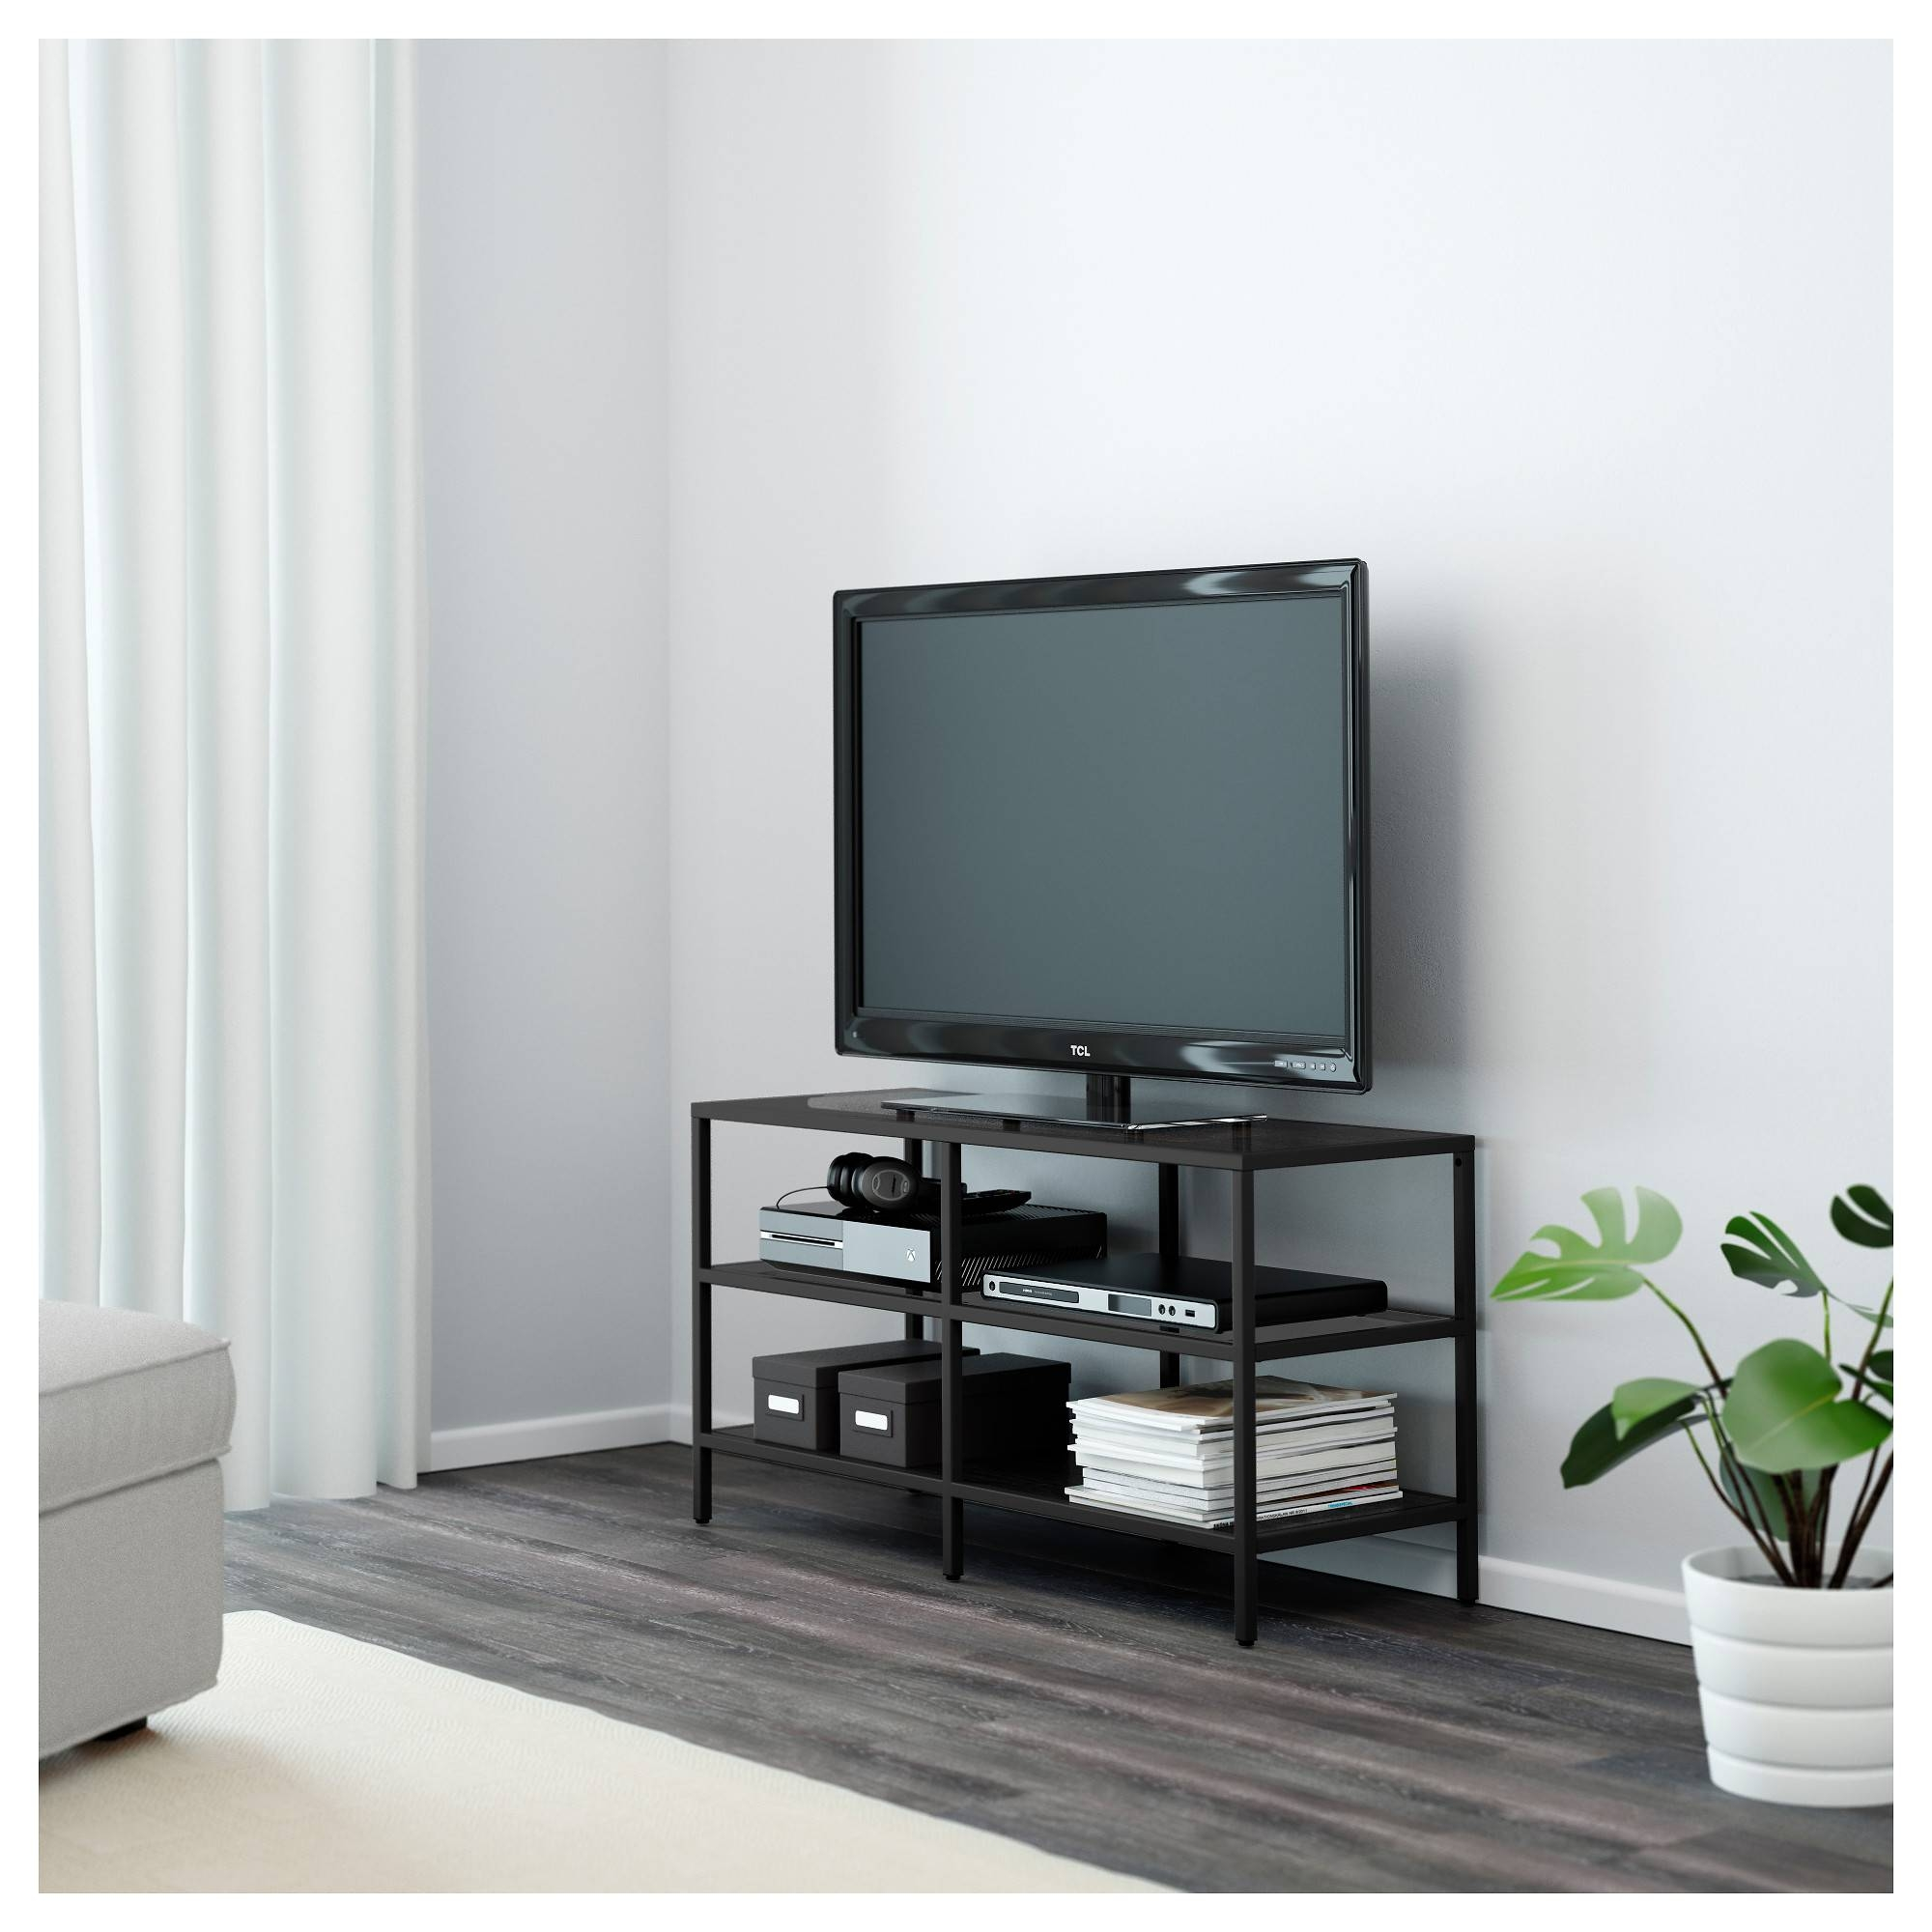 Vittsjö Tv Unit - Black-Brown/glass - Ikea with regard to Tv Table (Image 15 of 15)